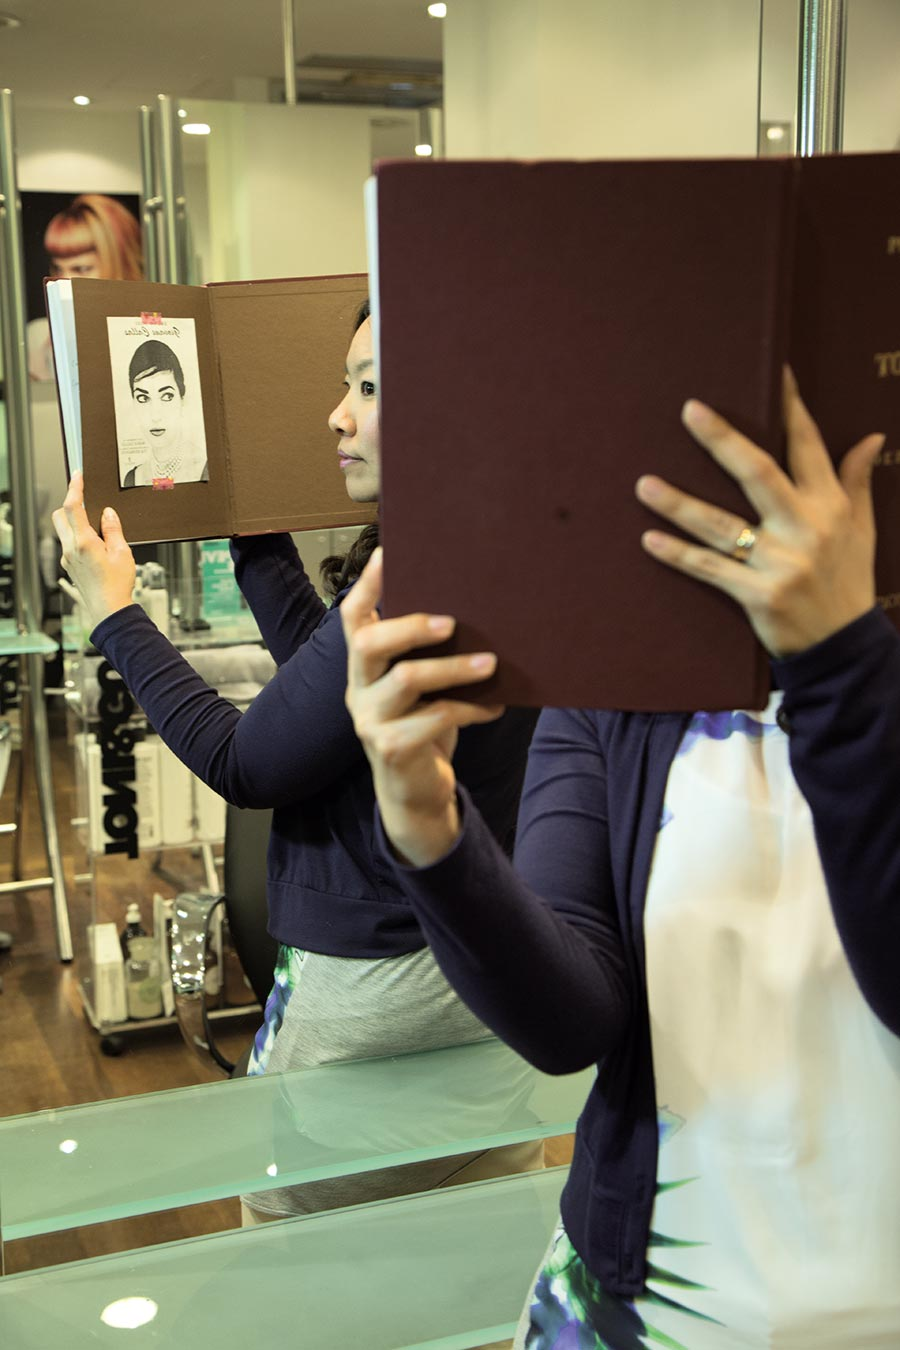 Injae Lee holds up a portrait of Maria Callas, her idol. Photos by Max Di Vincenzo, Milan, Italy